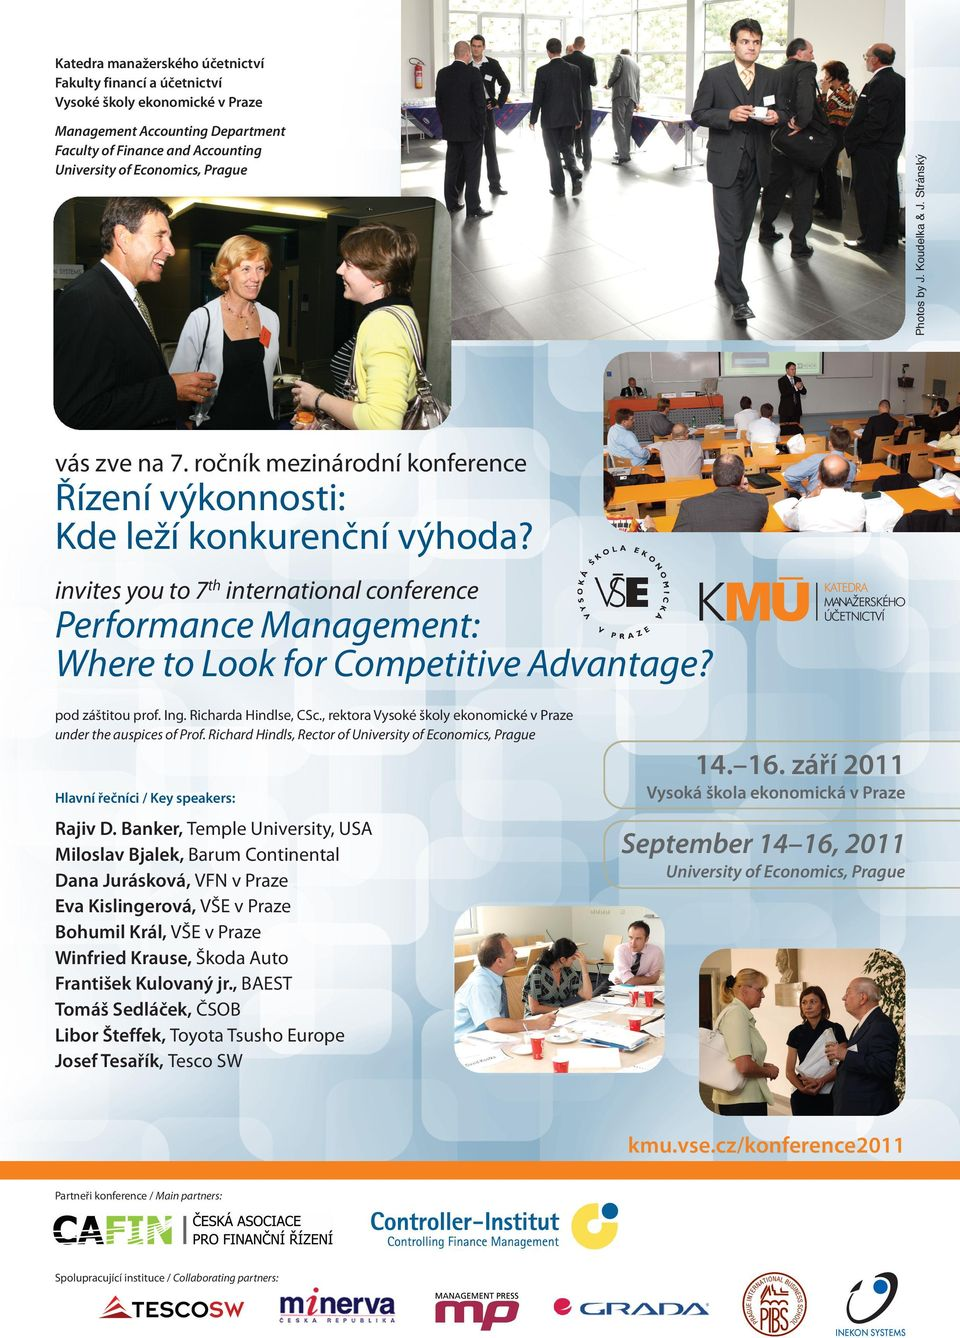 invites you to 7th international conference Performance Management: Where to Look for Competitive Advantage? pod záštitou prof. Ing. Richarda Hindlse, CSc.